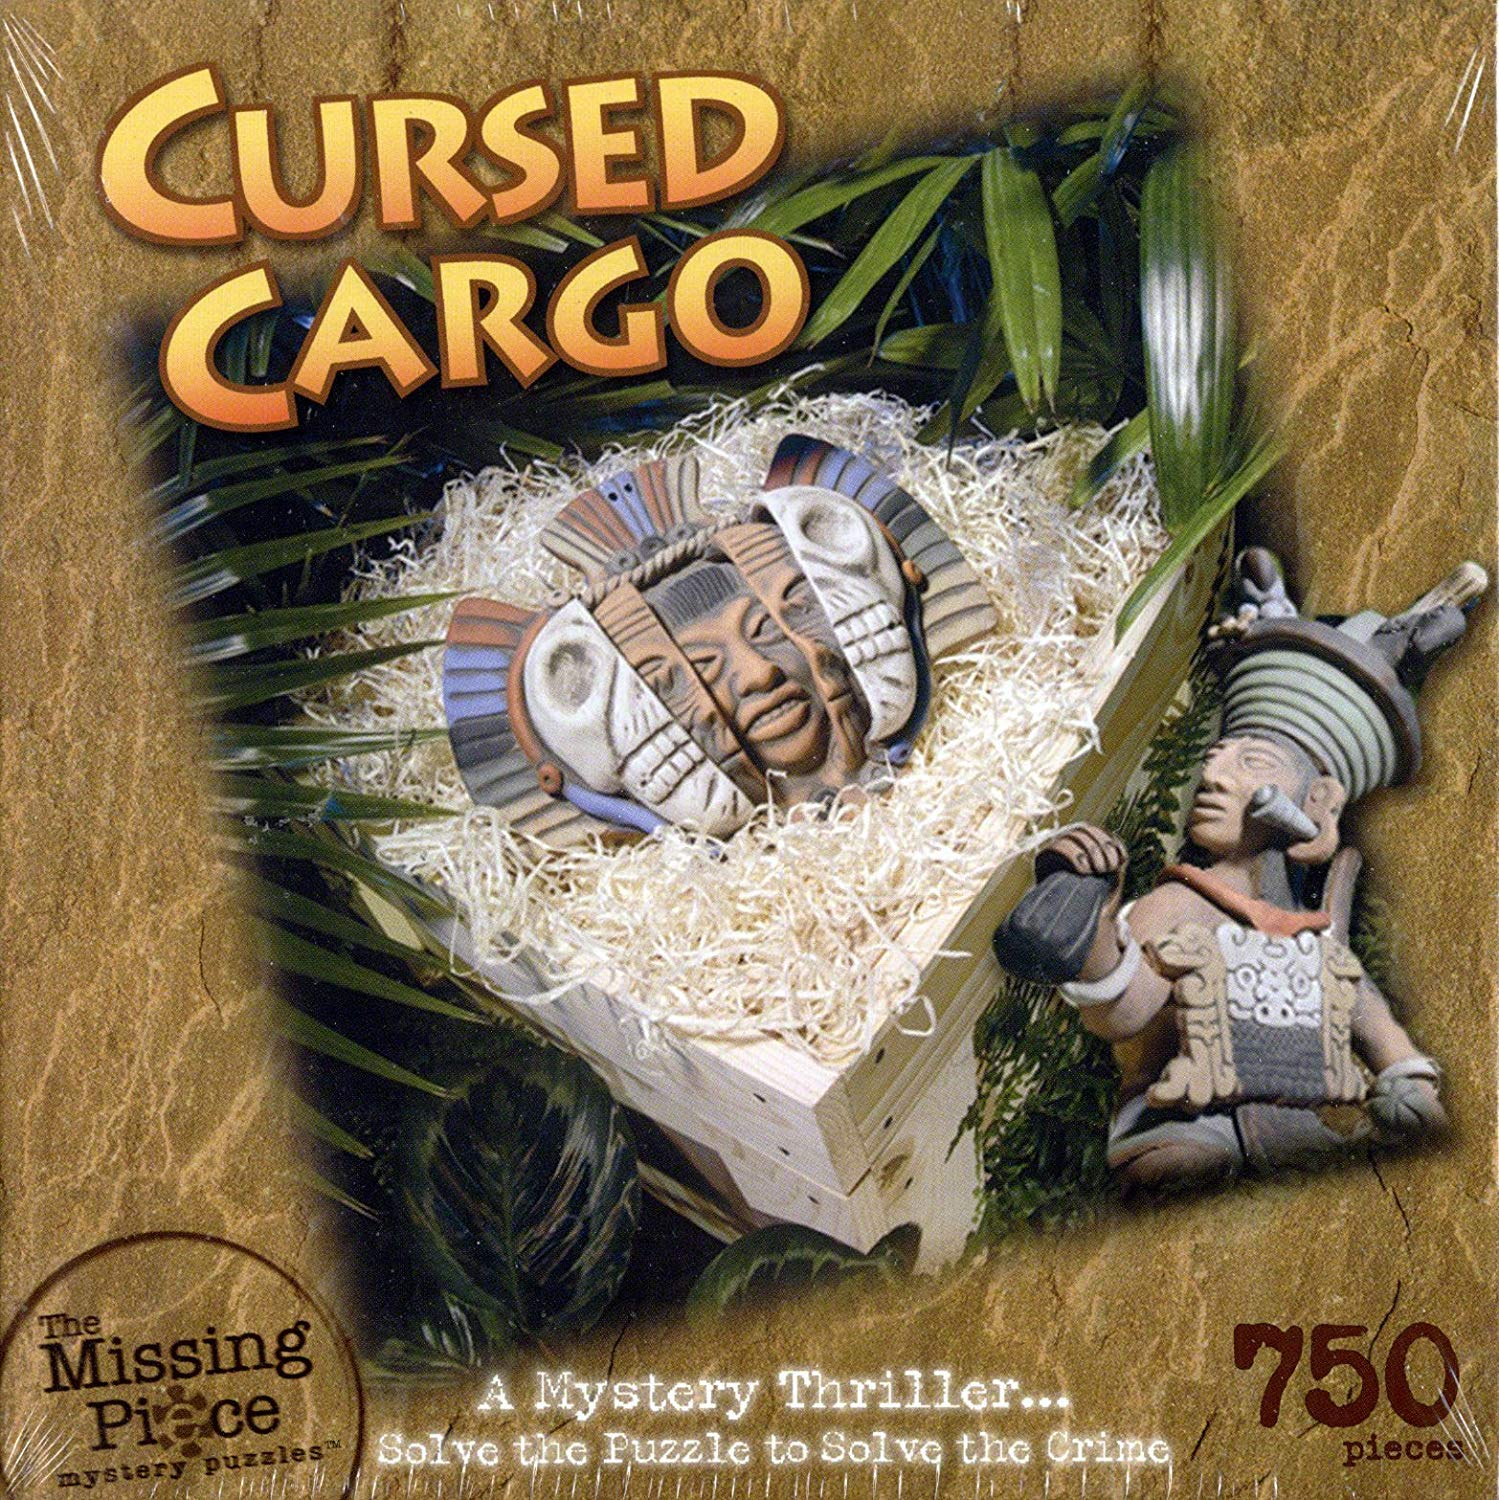 Missing Piece 750Piece Mystery Puzzle  Cursed Cargo by pinkart